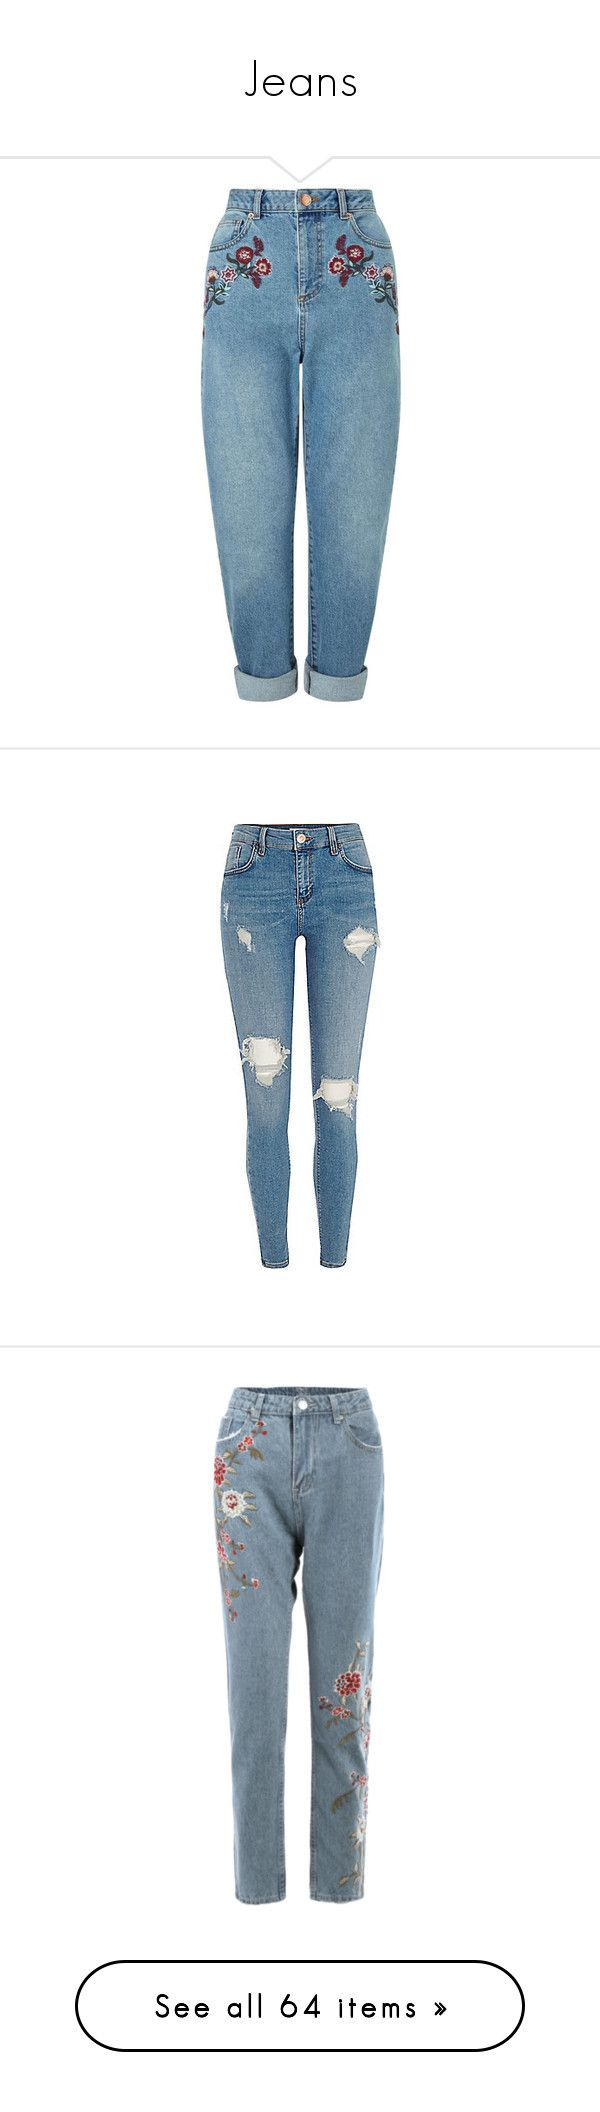 """Jeans"" by ekaterina-stepura on Polyvore featuring jeans, pants, bottoms, pantalones, blue, blue jeans, miss selfridge, embroidery jeans, embroidered jeans и miss selfridge jeans"